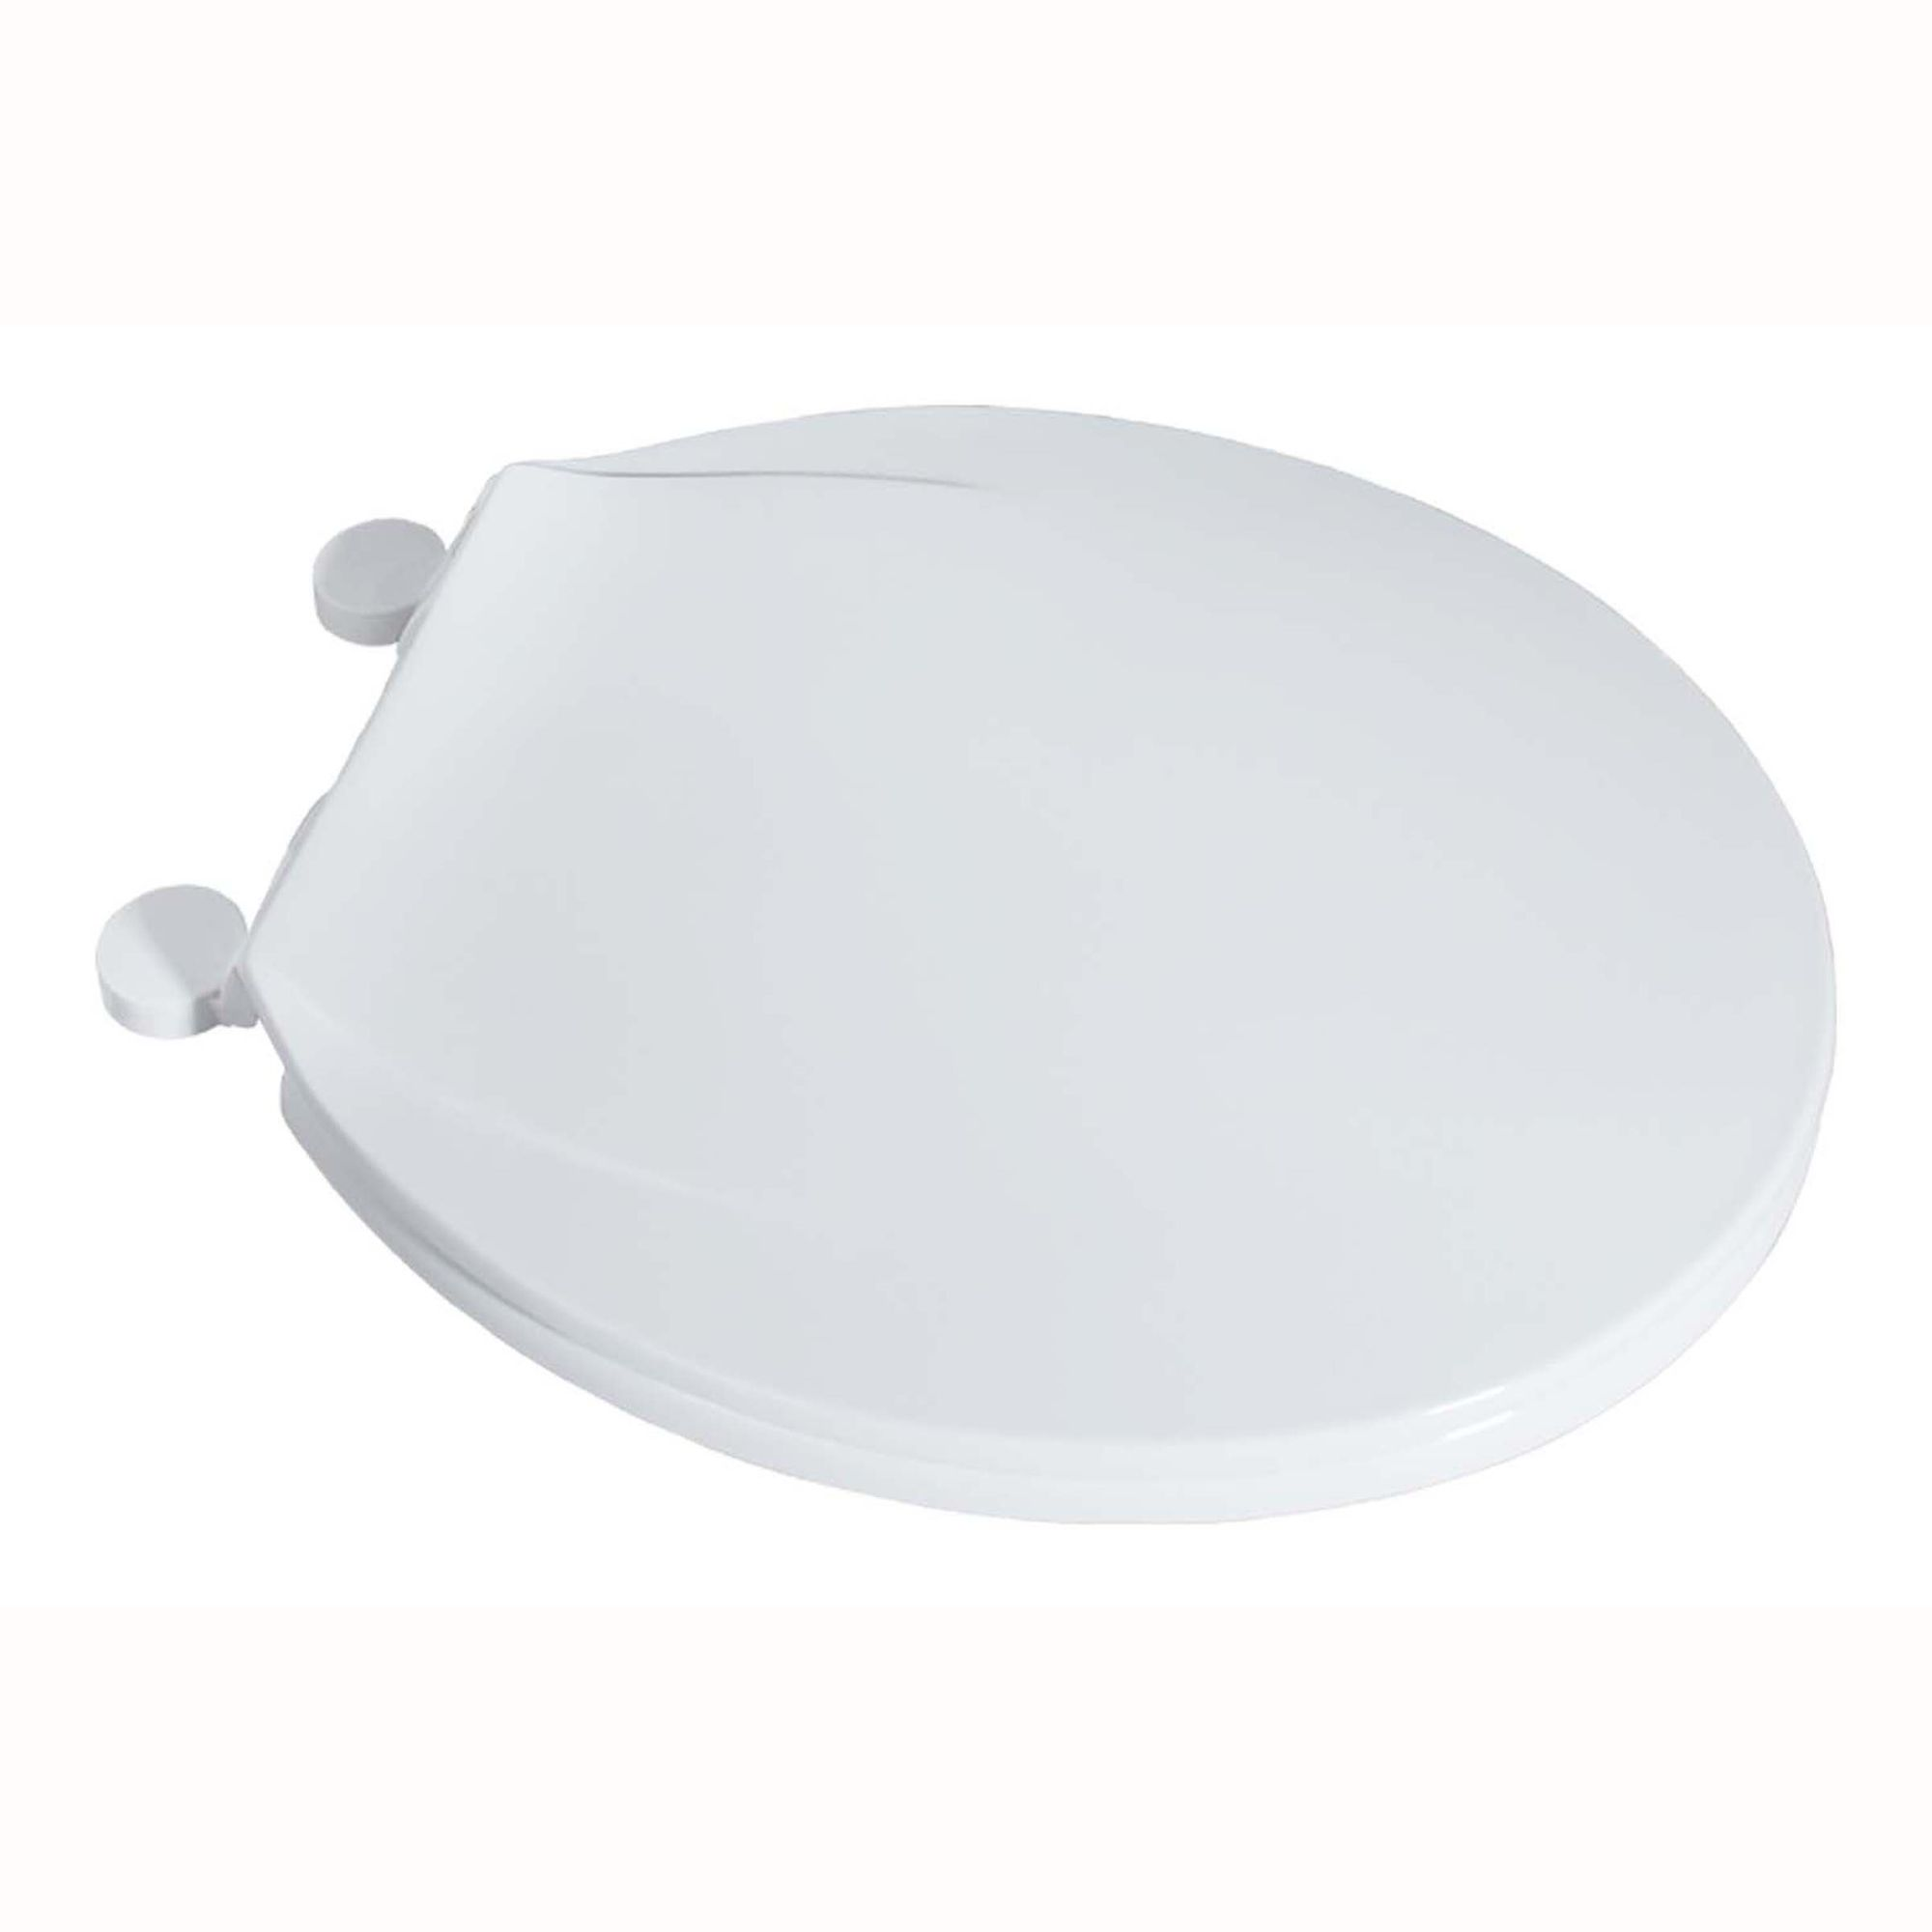 LDR Industries  Round Plastic Toilet Seat Slow Close White